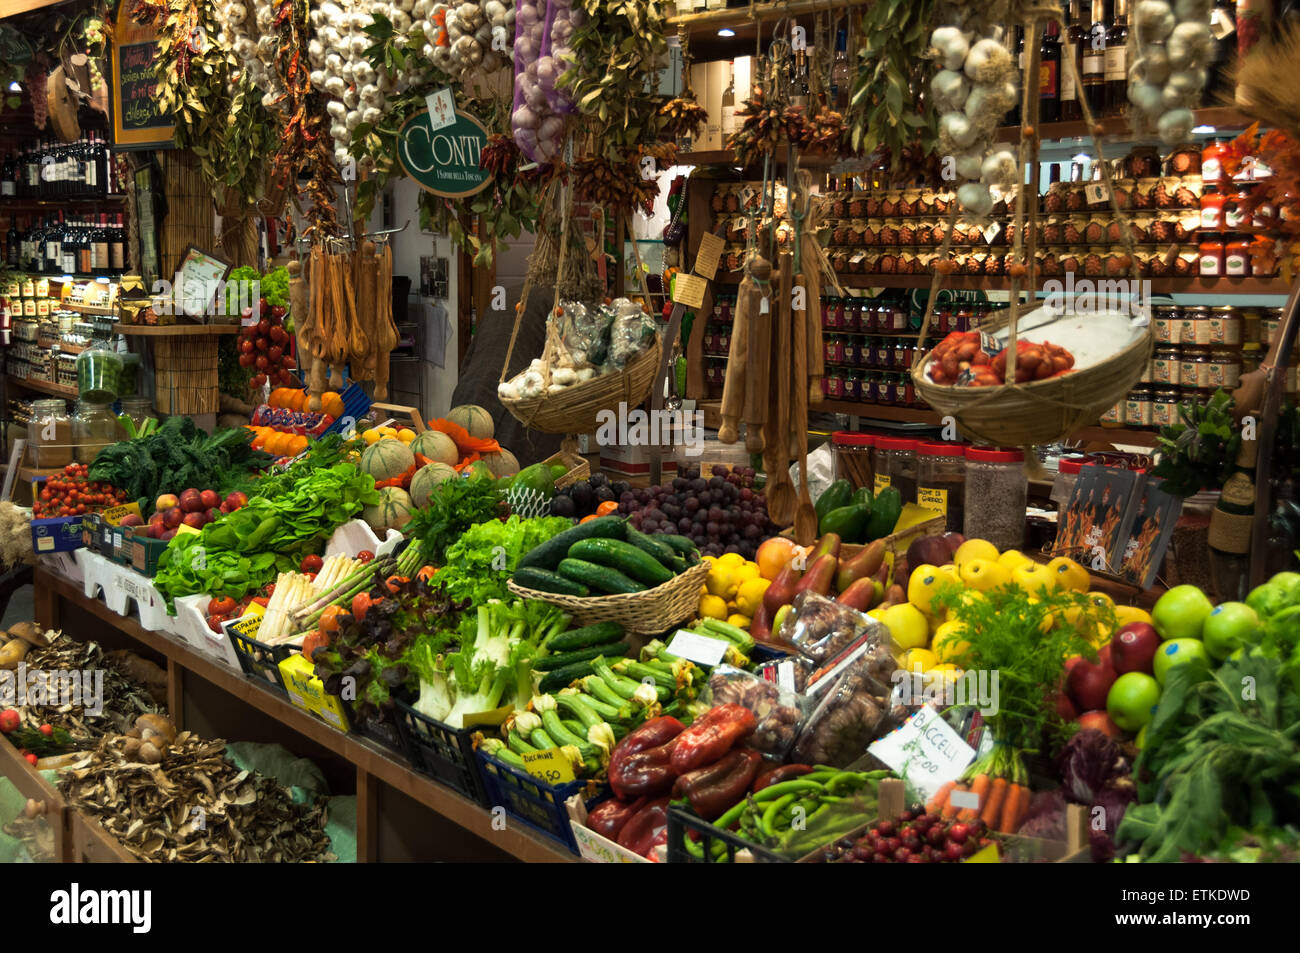 interior-of-the-mercato-centrale-food-and-flower-market-in-florence-ETKDWD.jpg